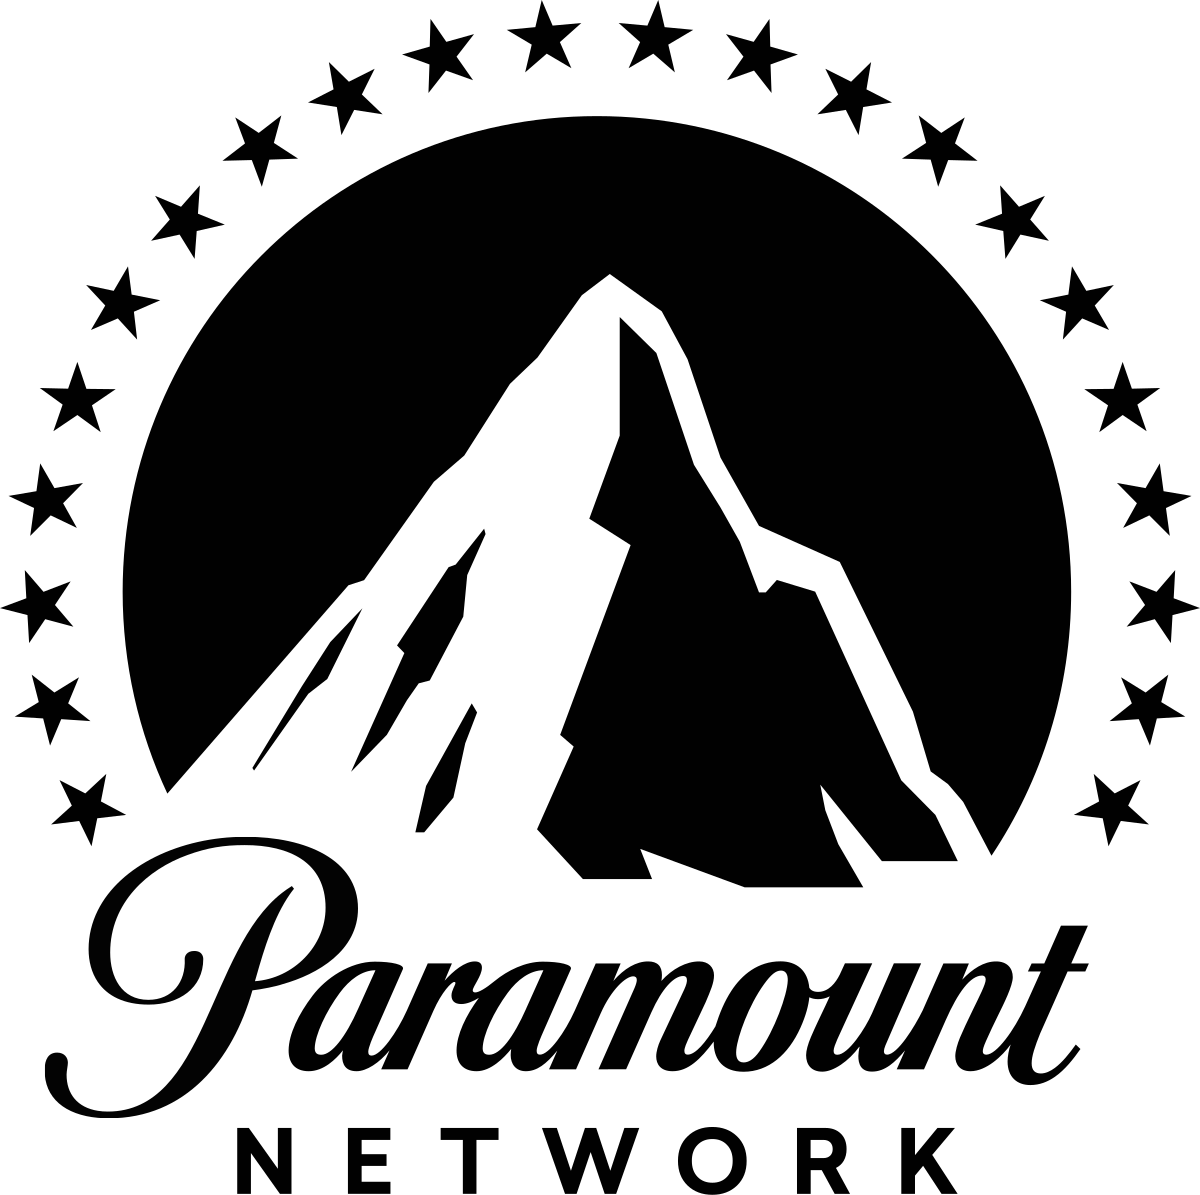 Spike tv logo png. Paramount network wikipedia